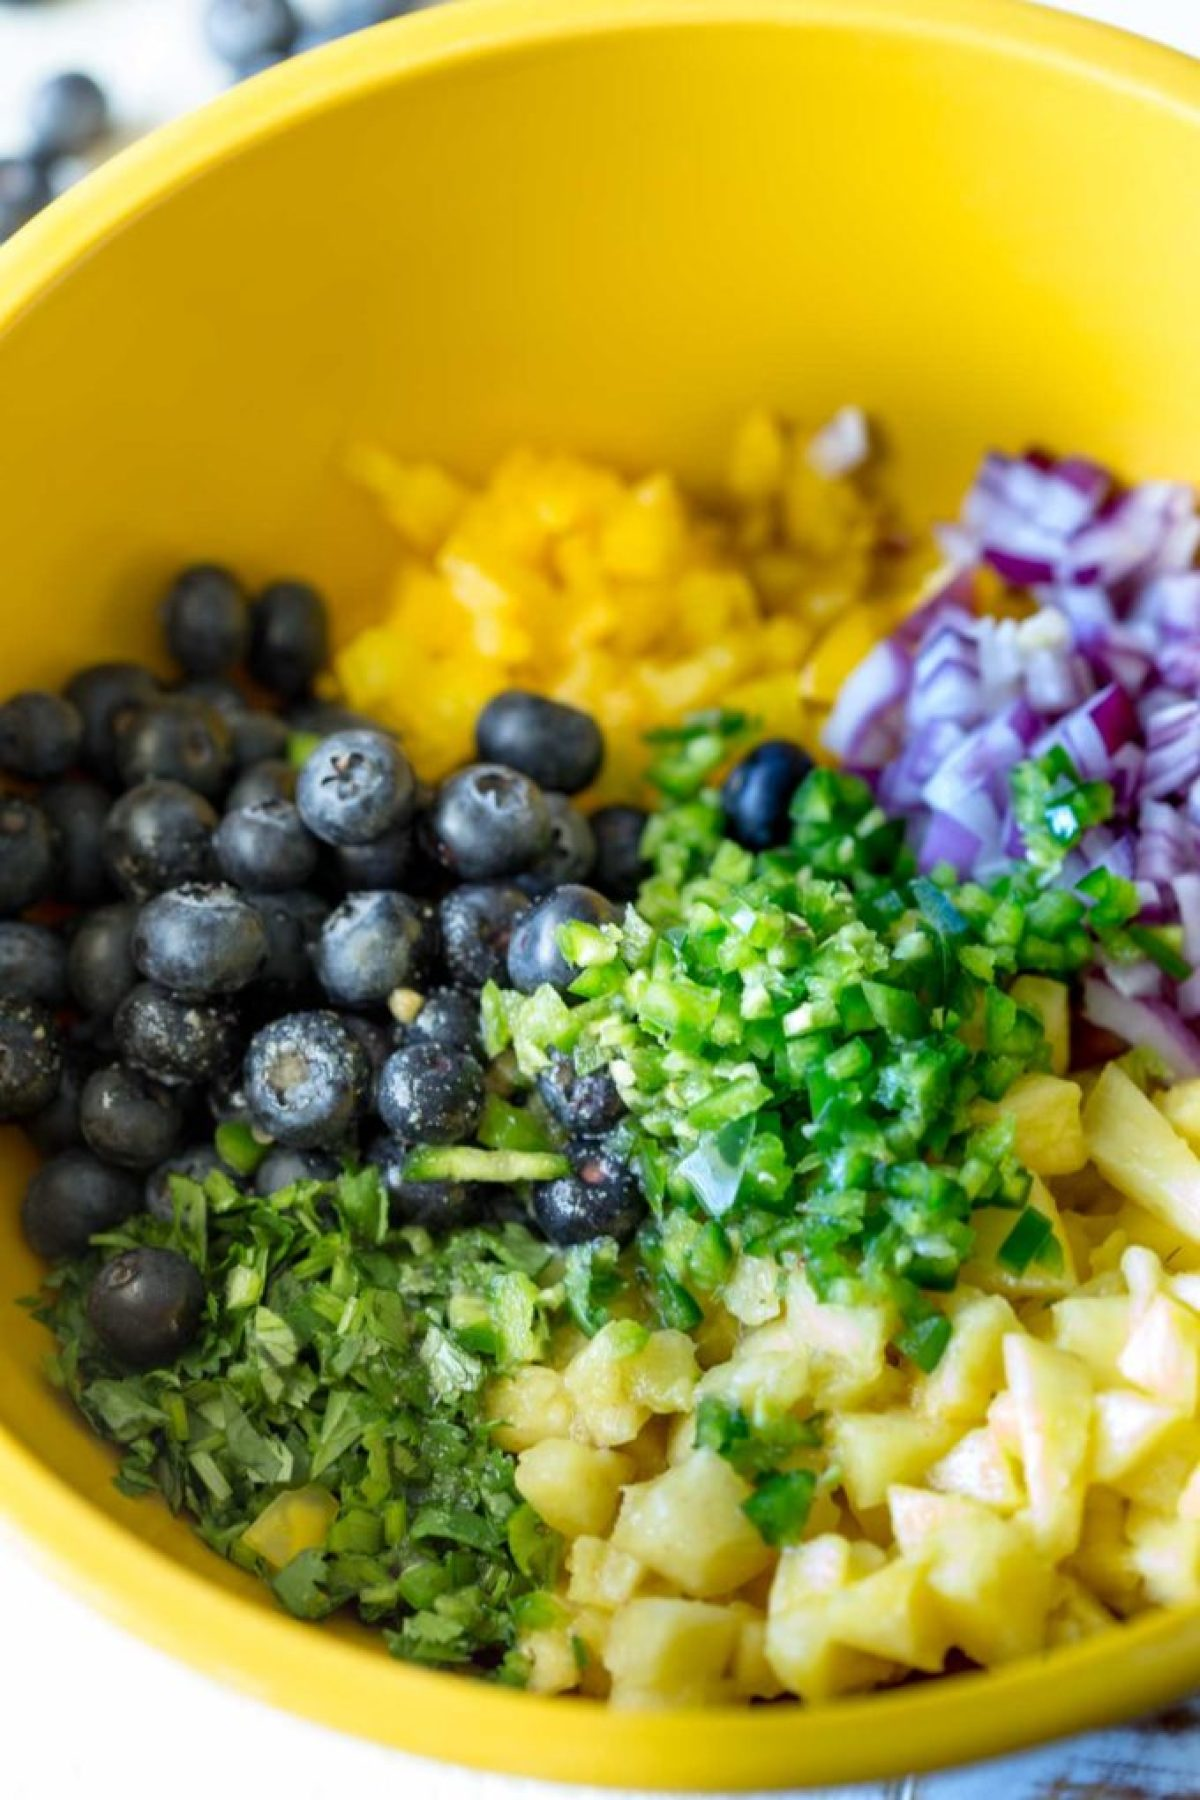 Blueberry fruit salsa ingredients